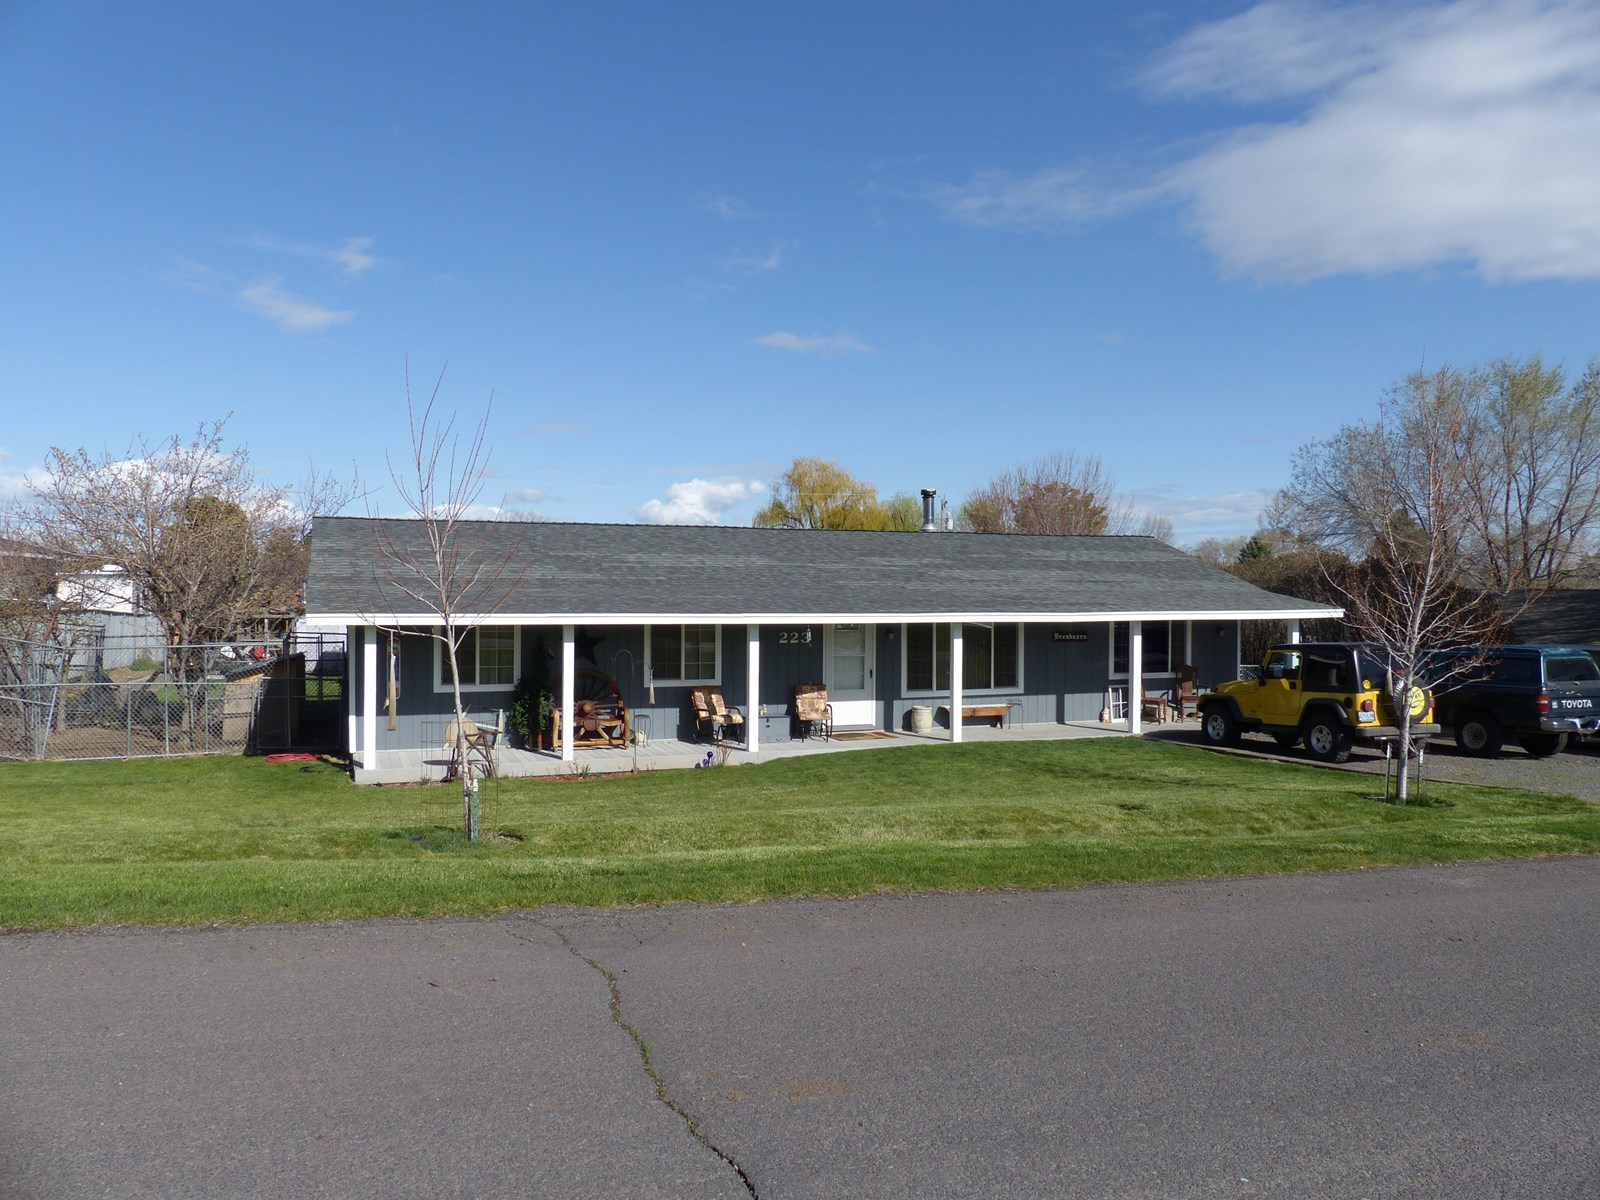 NICELY REMODELED HOME - 30 X 40 SHOP - EDGE OF TOWN